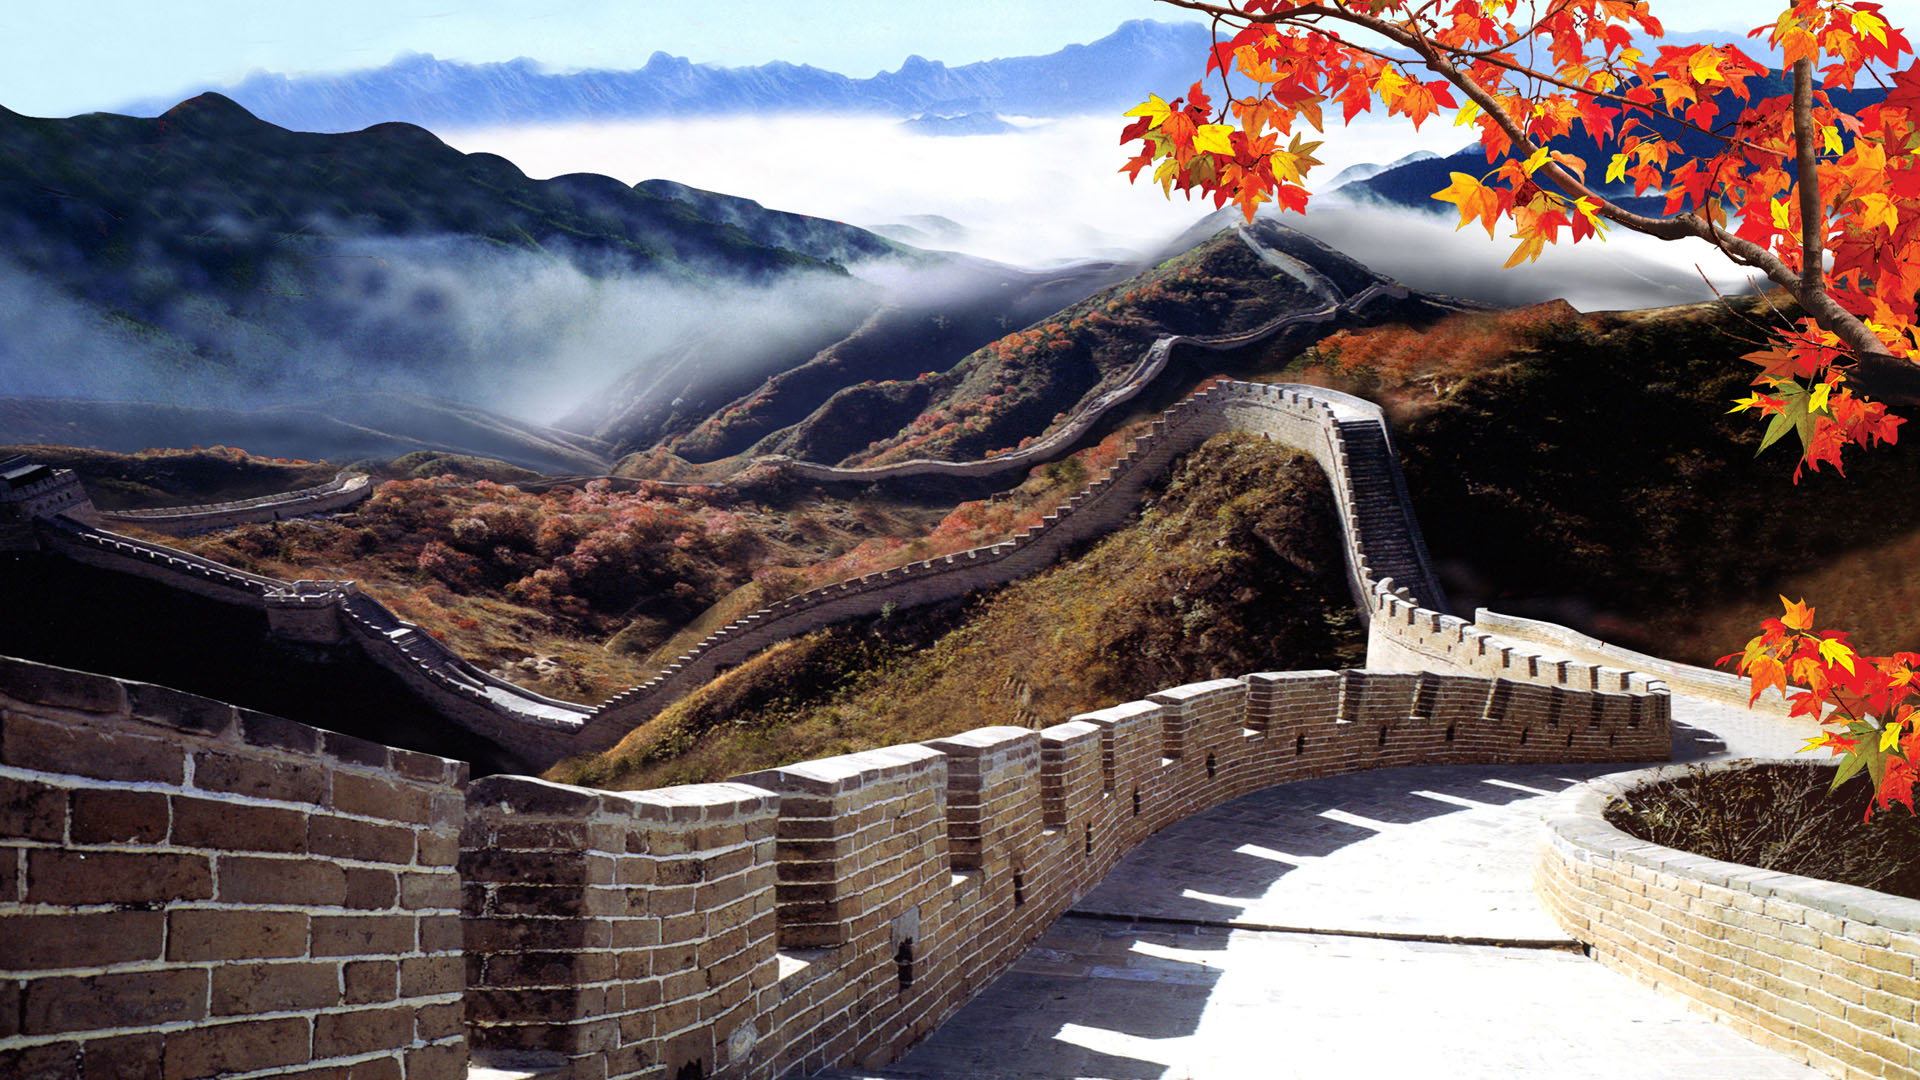 Great Wall Of China clipart Great Wall Of China Wallpaper High Resolution 34 Resolution Wallpapers HQ GuoGuiyan